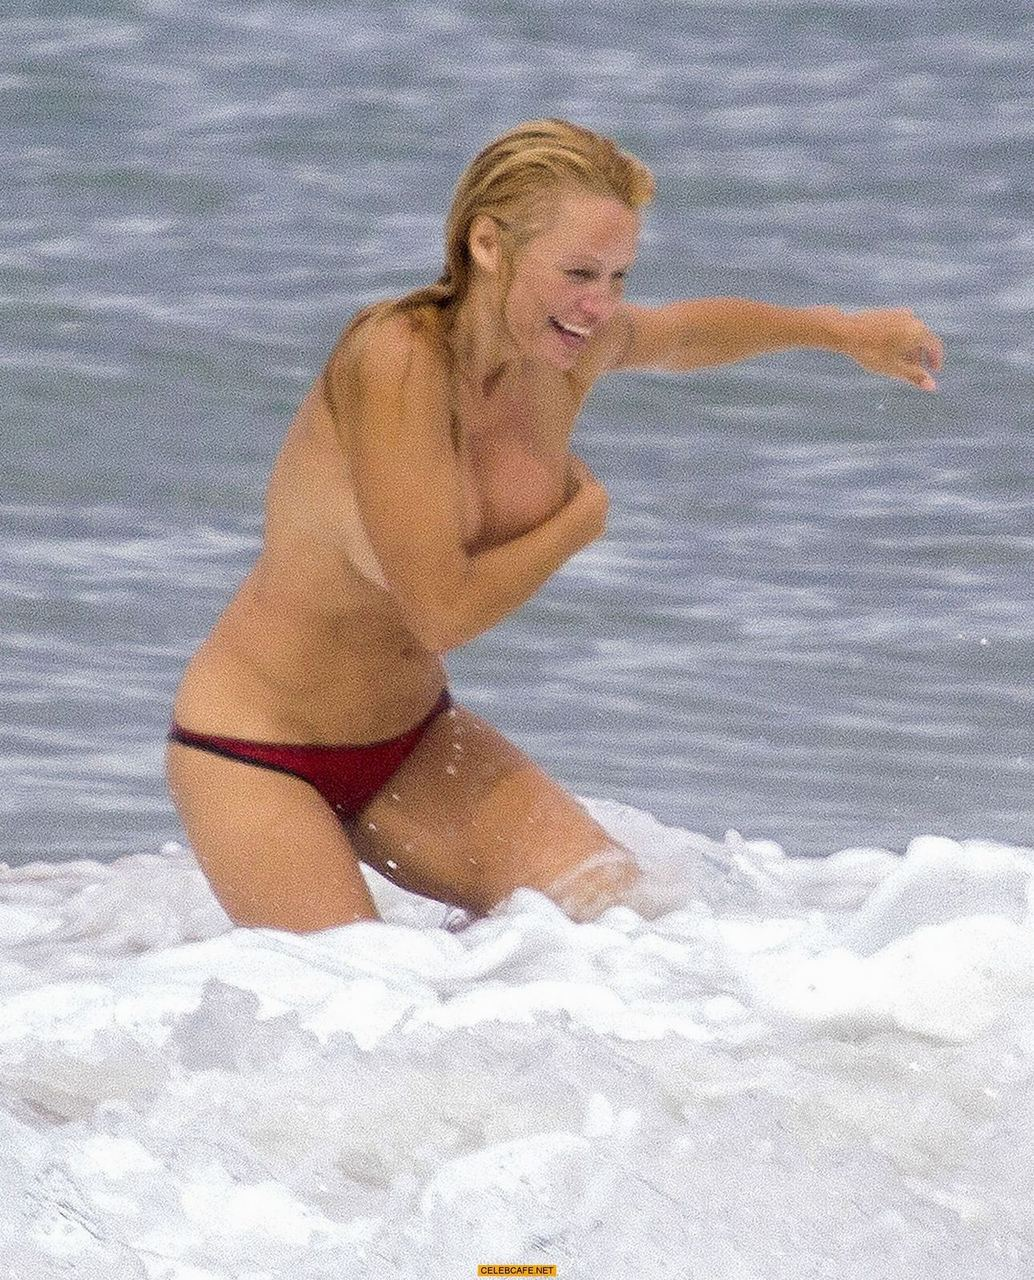 pam anderson topless beach france